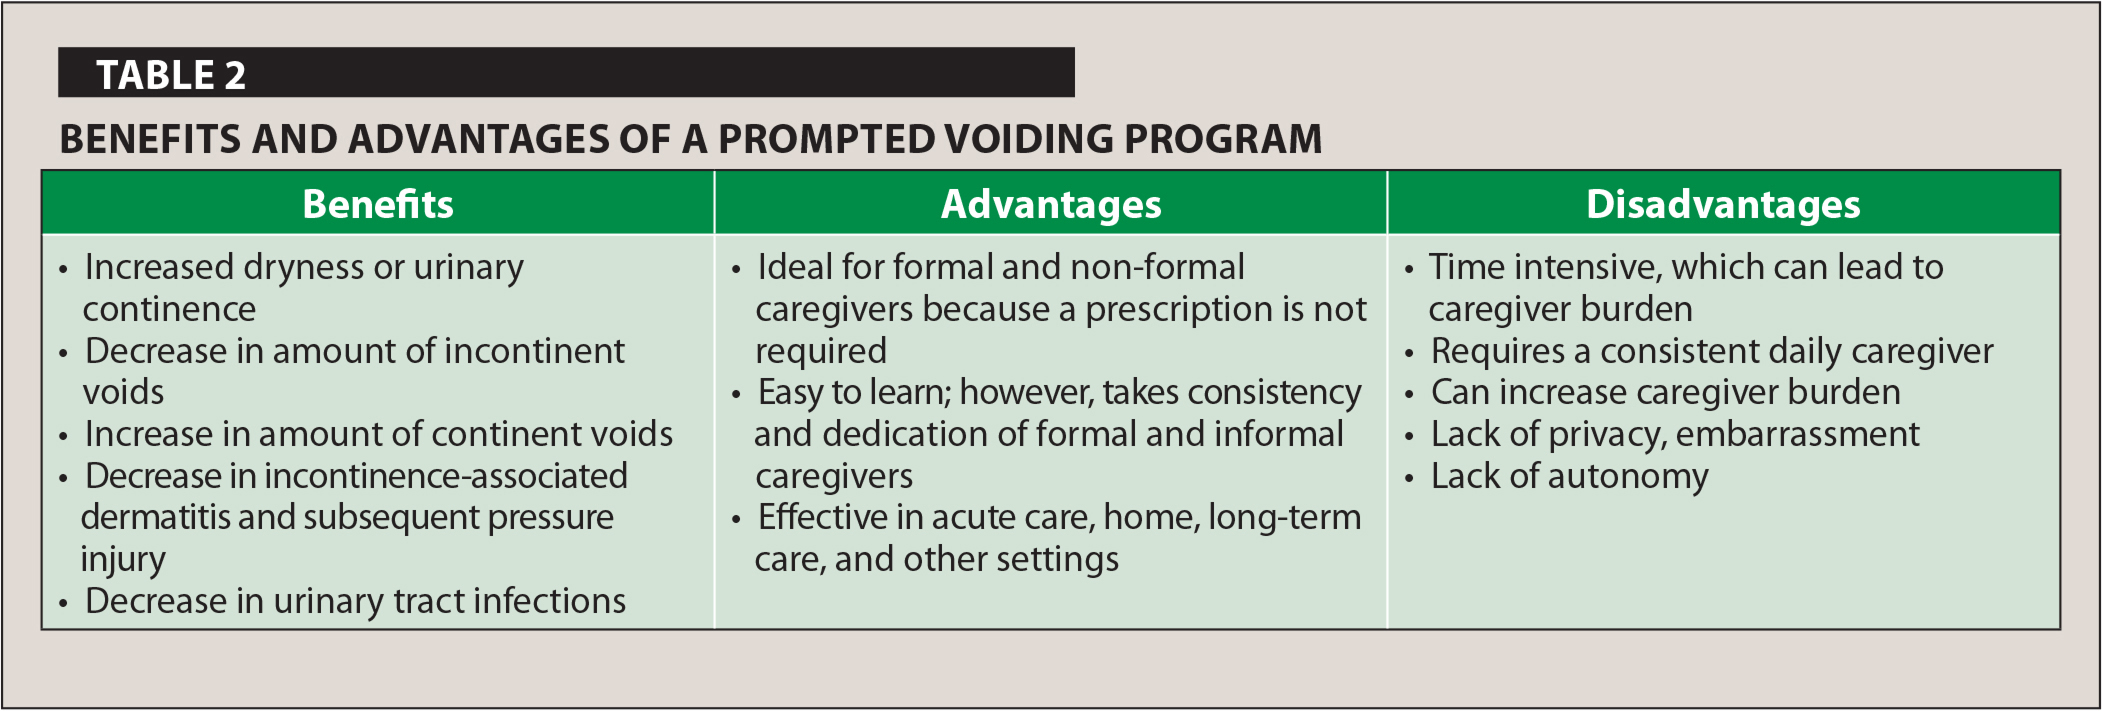 Benefits and Advantages of a Prompted Voiding Program